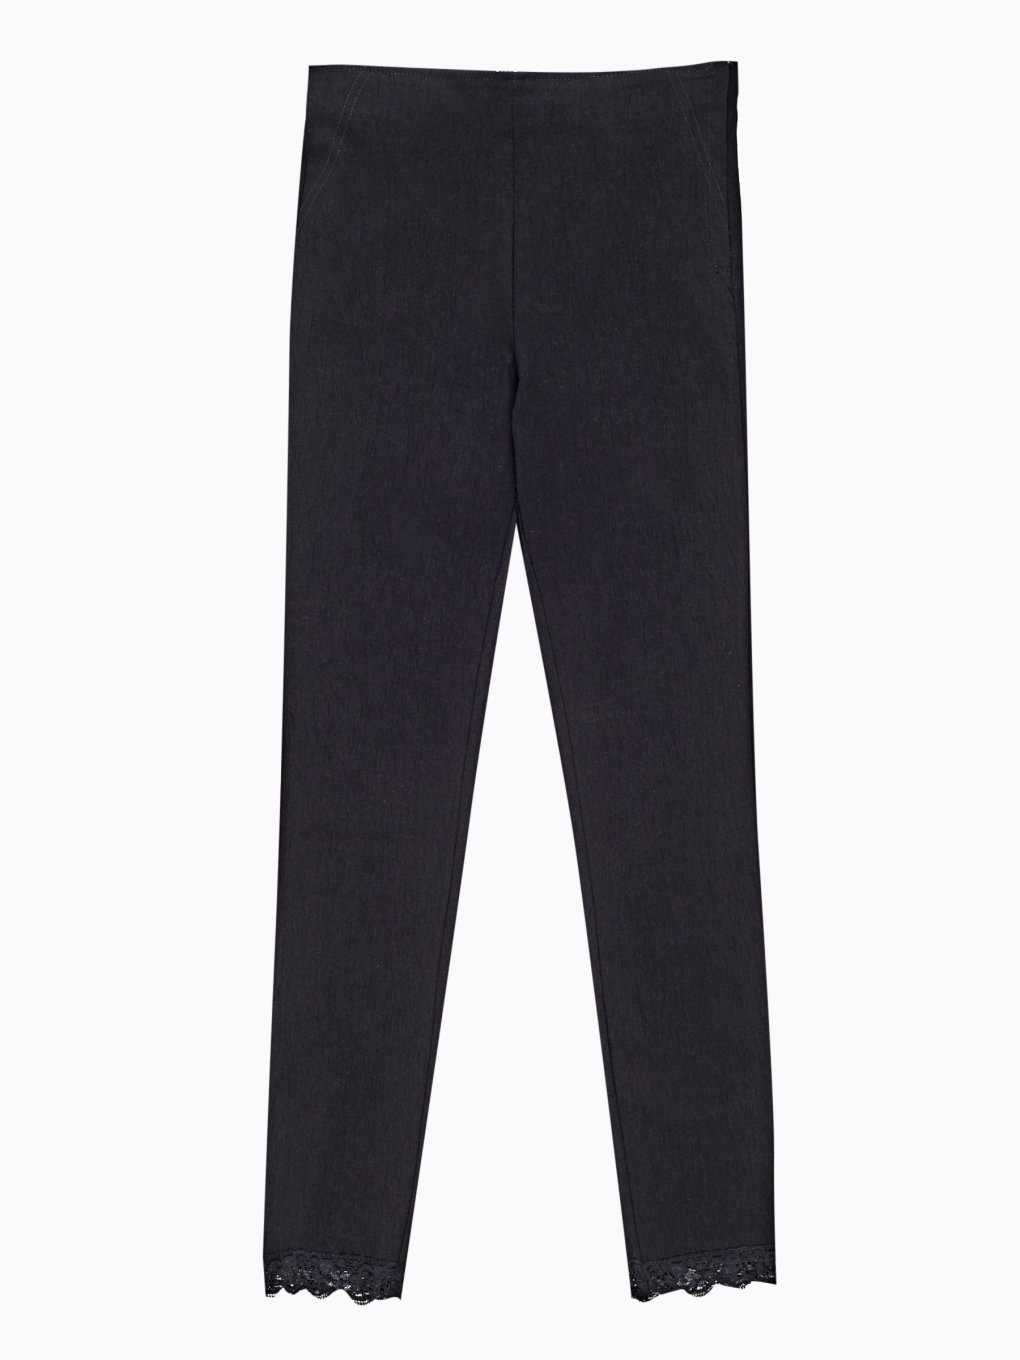 Super skinny trousers with lace hem